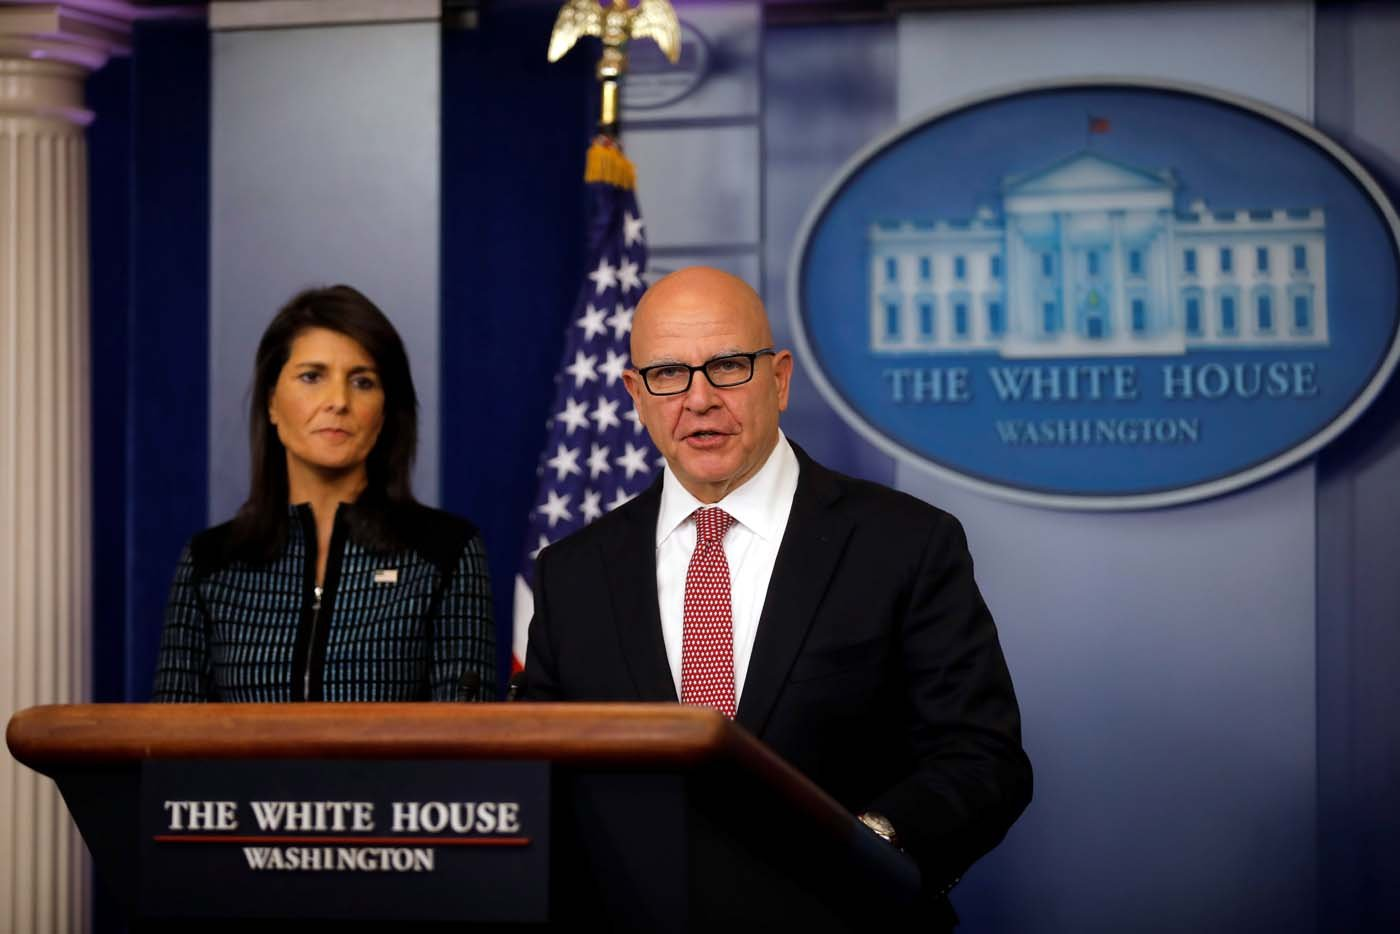 National Security Advisor H.R. McMaster speaks during the daily briefing accompanied by U.S. Ambassador to the UN, Nikki Haley at the White House in Washington, U.S., September 15, 2017. REUTERS/Carlos Barria